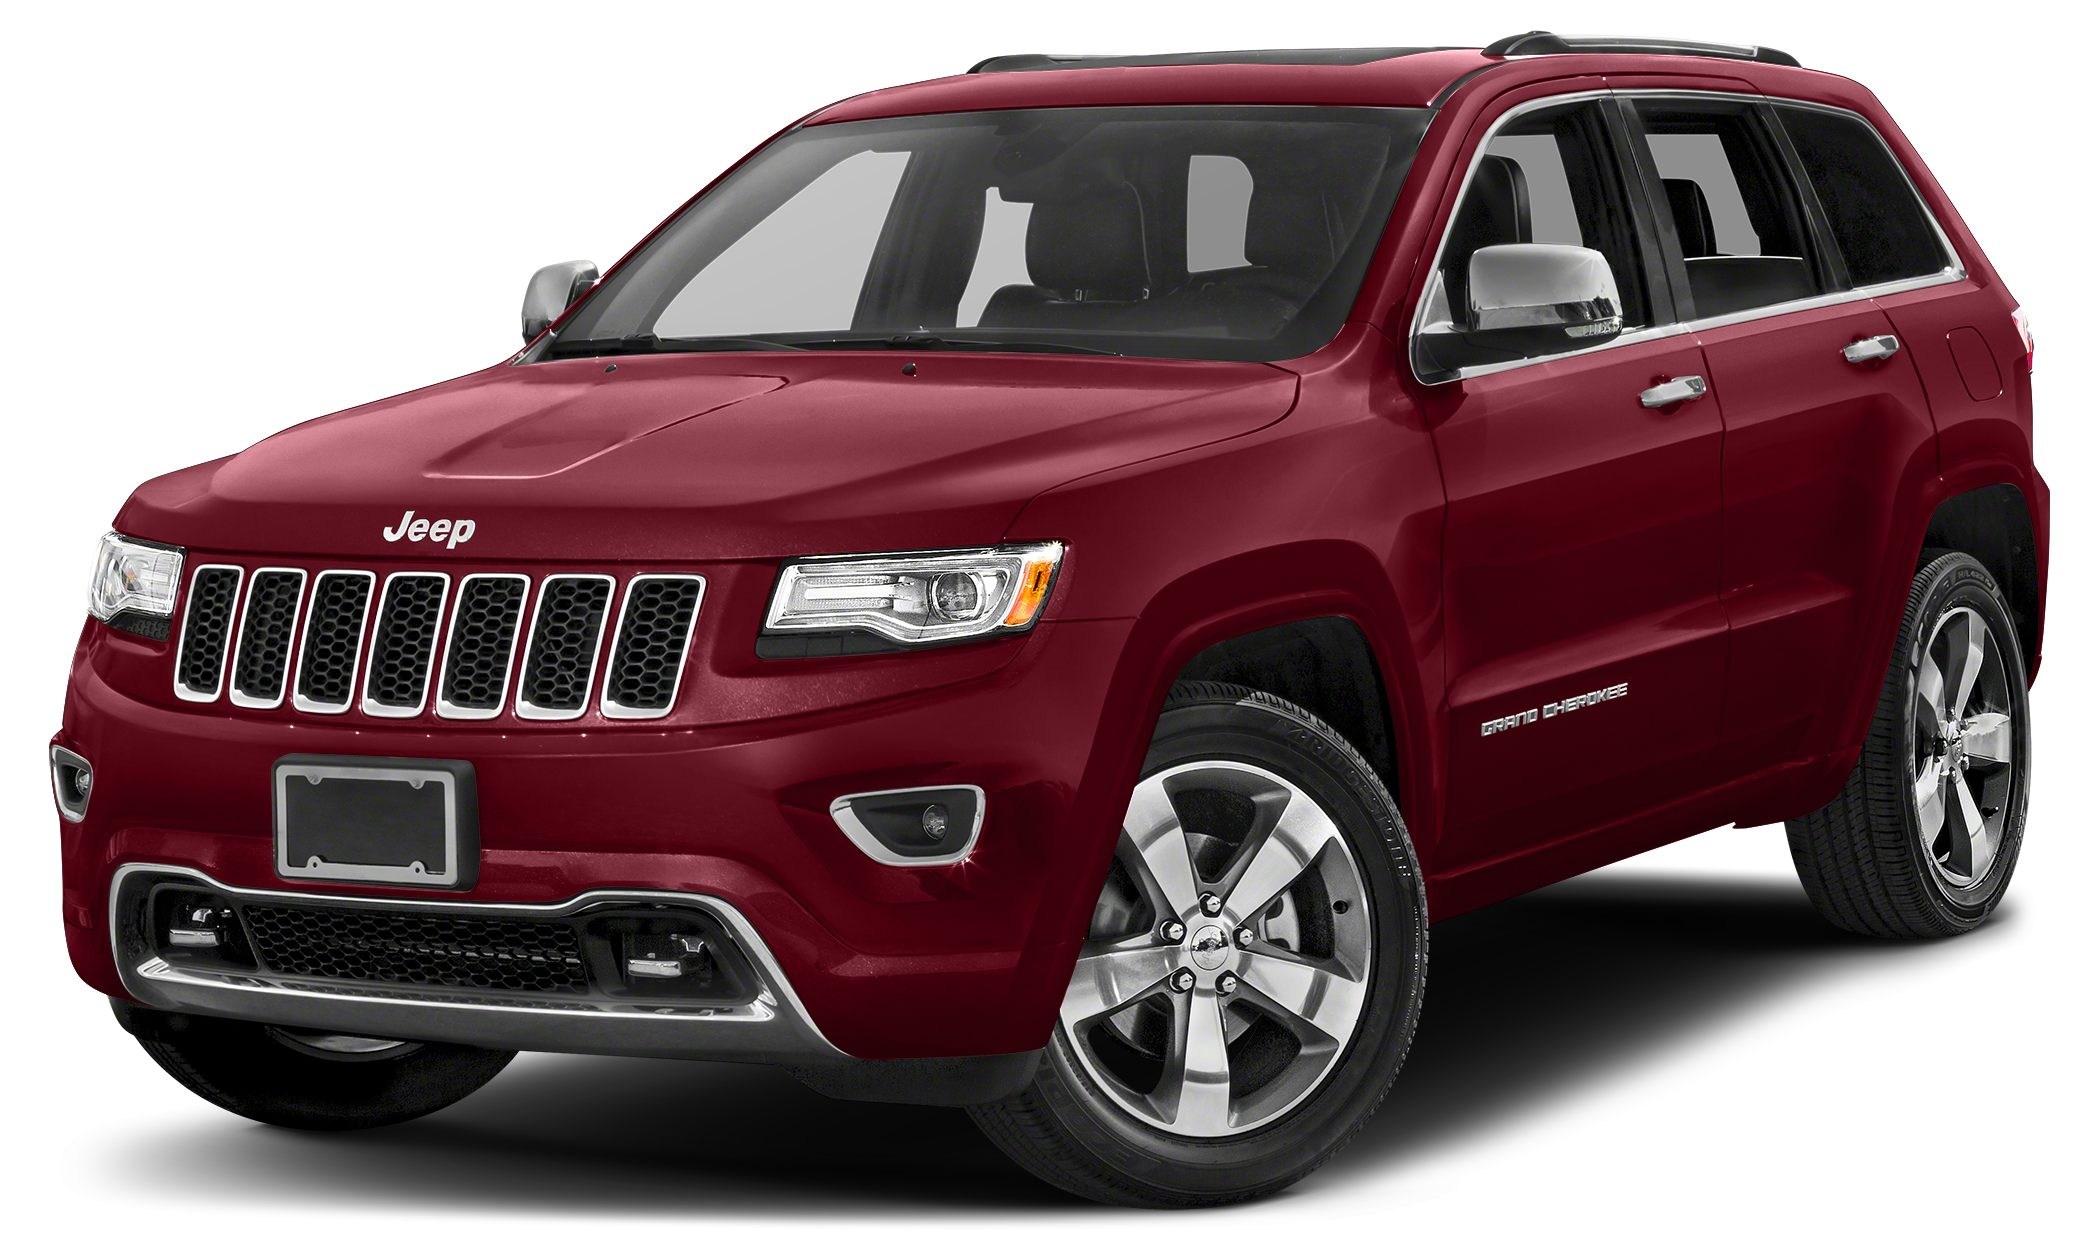 2014 Jeep Grand Cherokee Overland 30L V6 Turbo Diesel with LOW MILEAGE What an outstanding deal